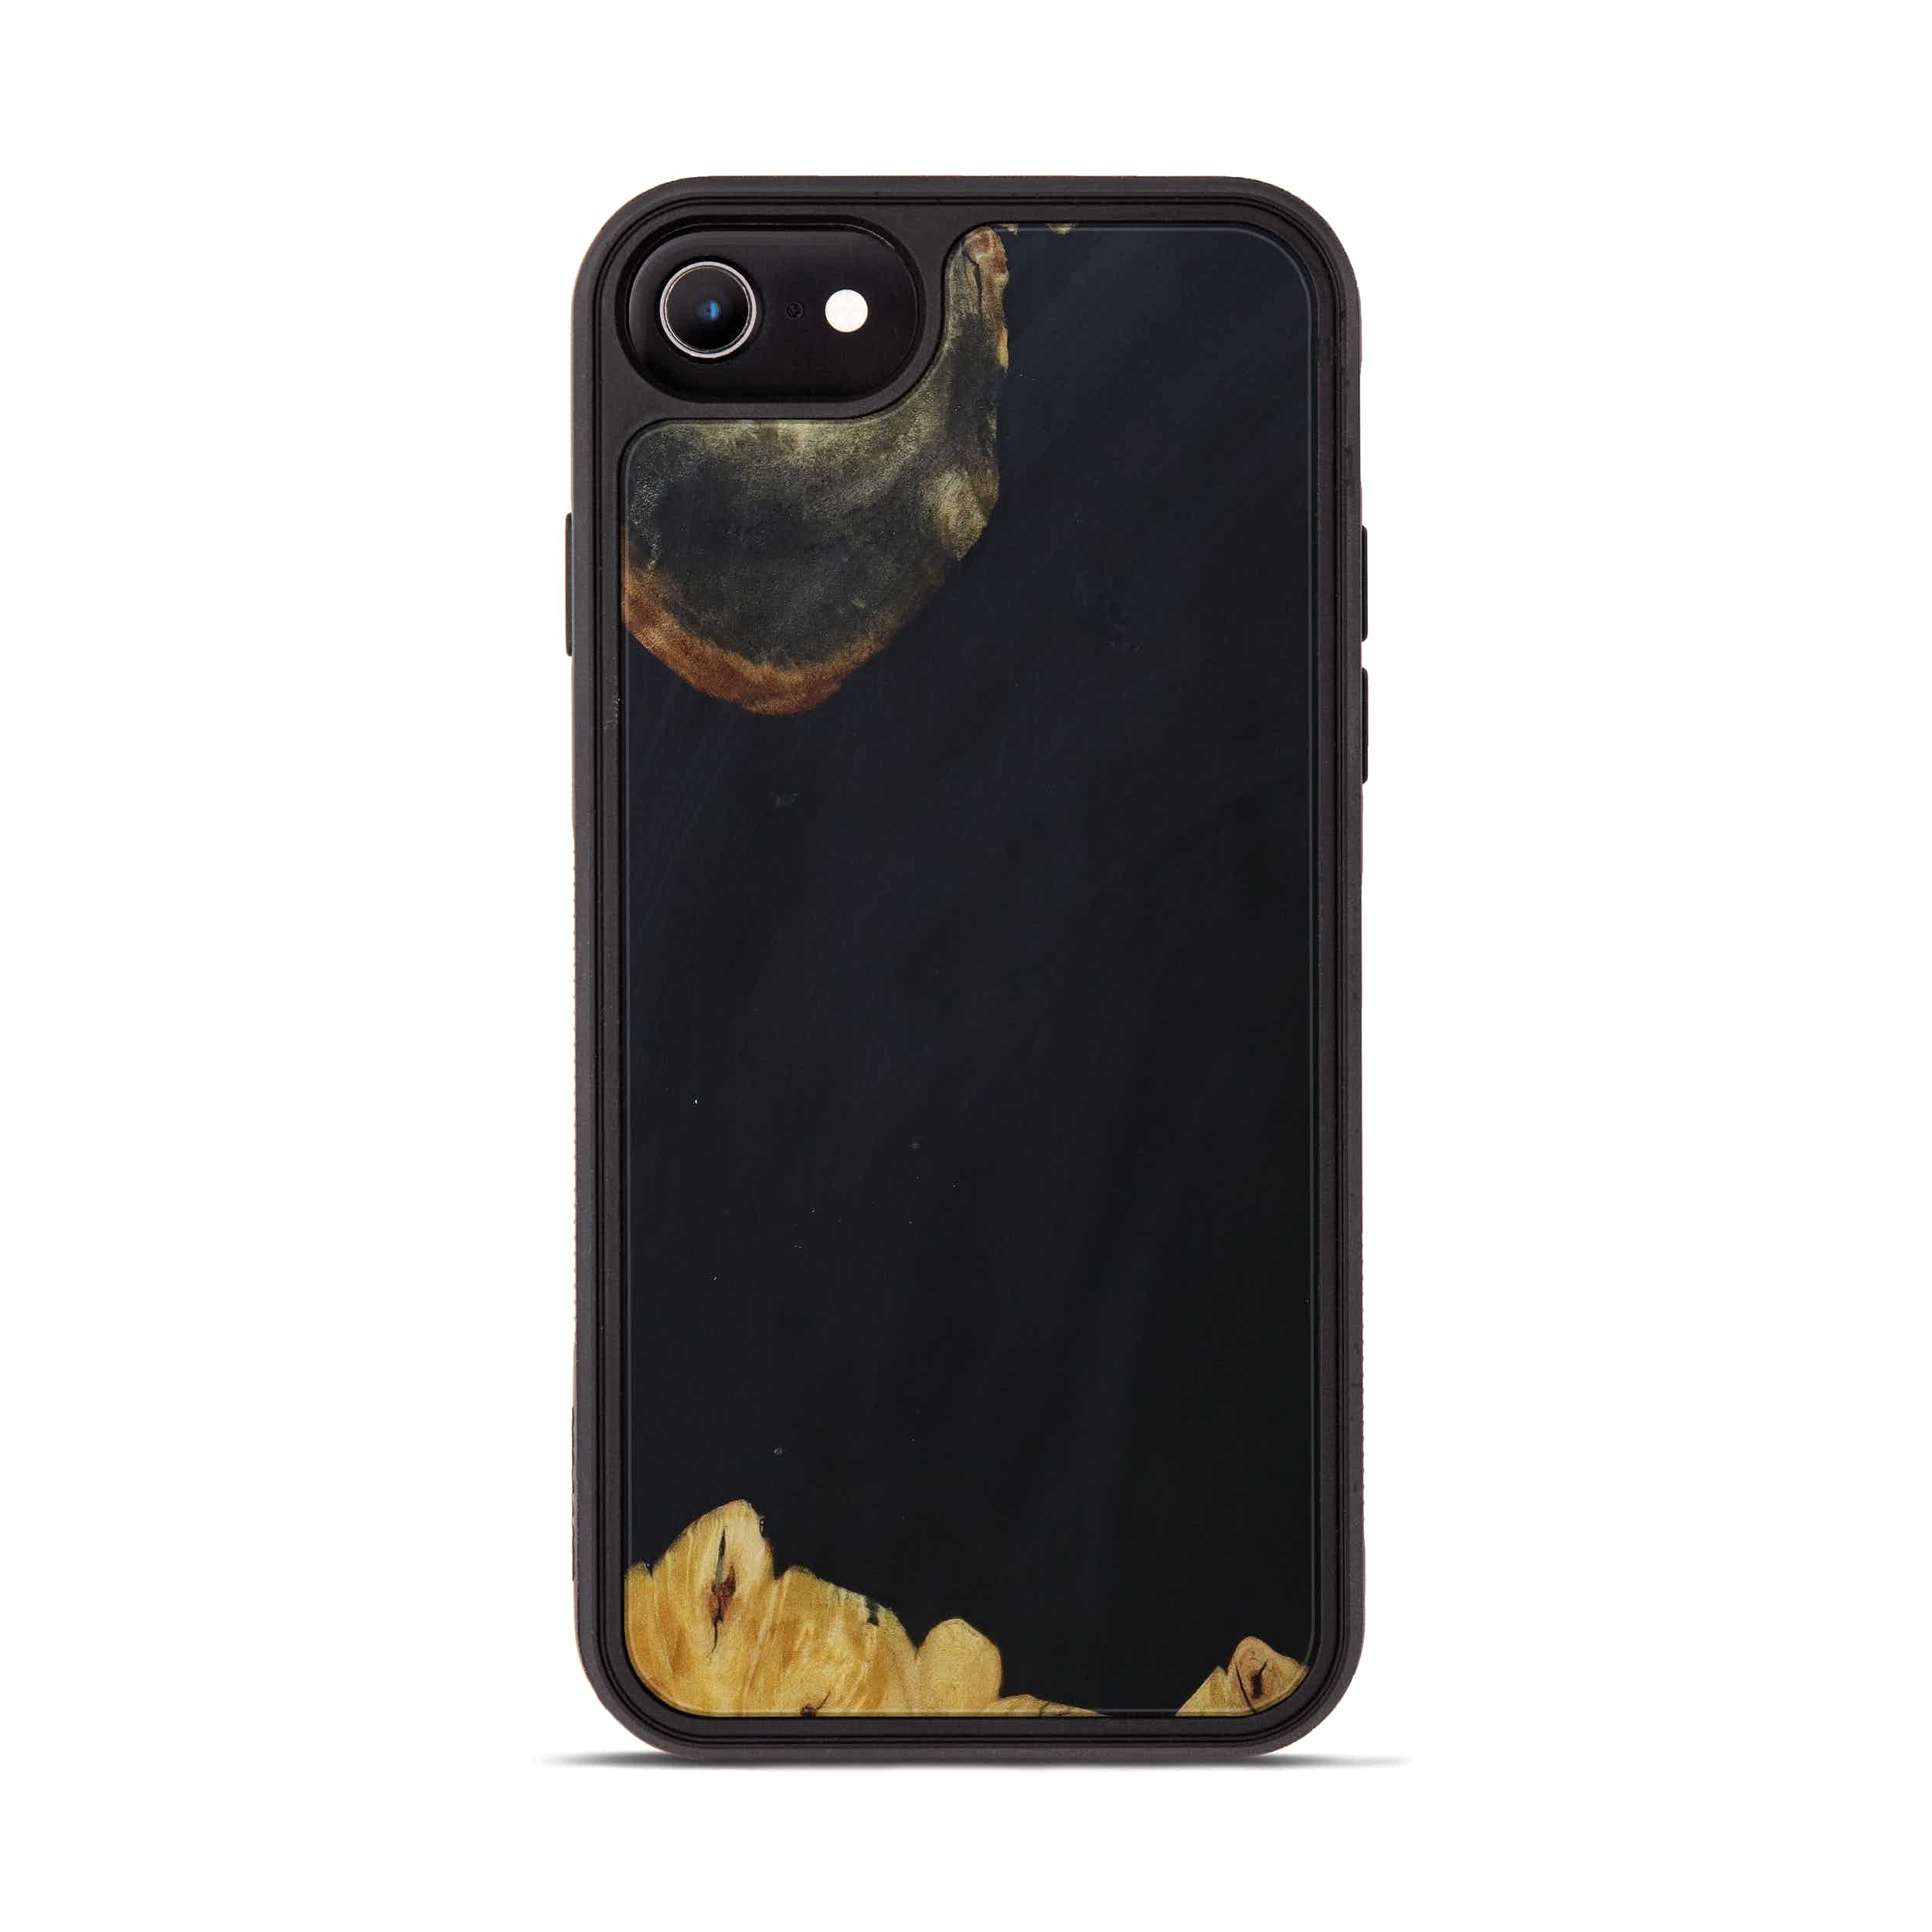 iPhone 6s Wood+Resin Phone Case - Steffane (Pure Black, 393220)